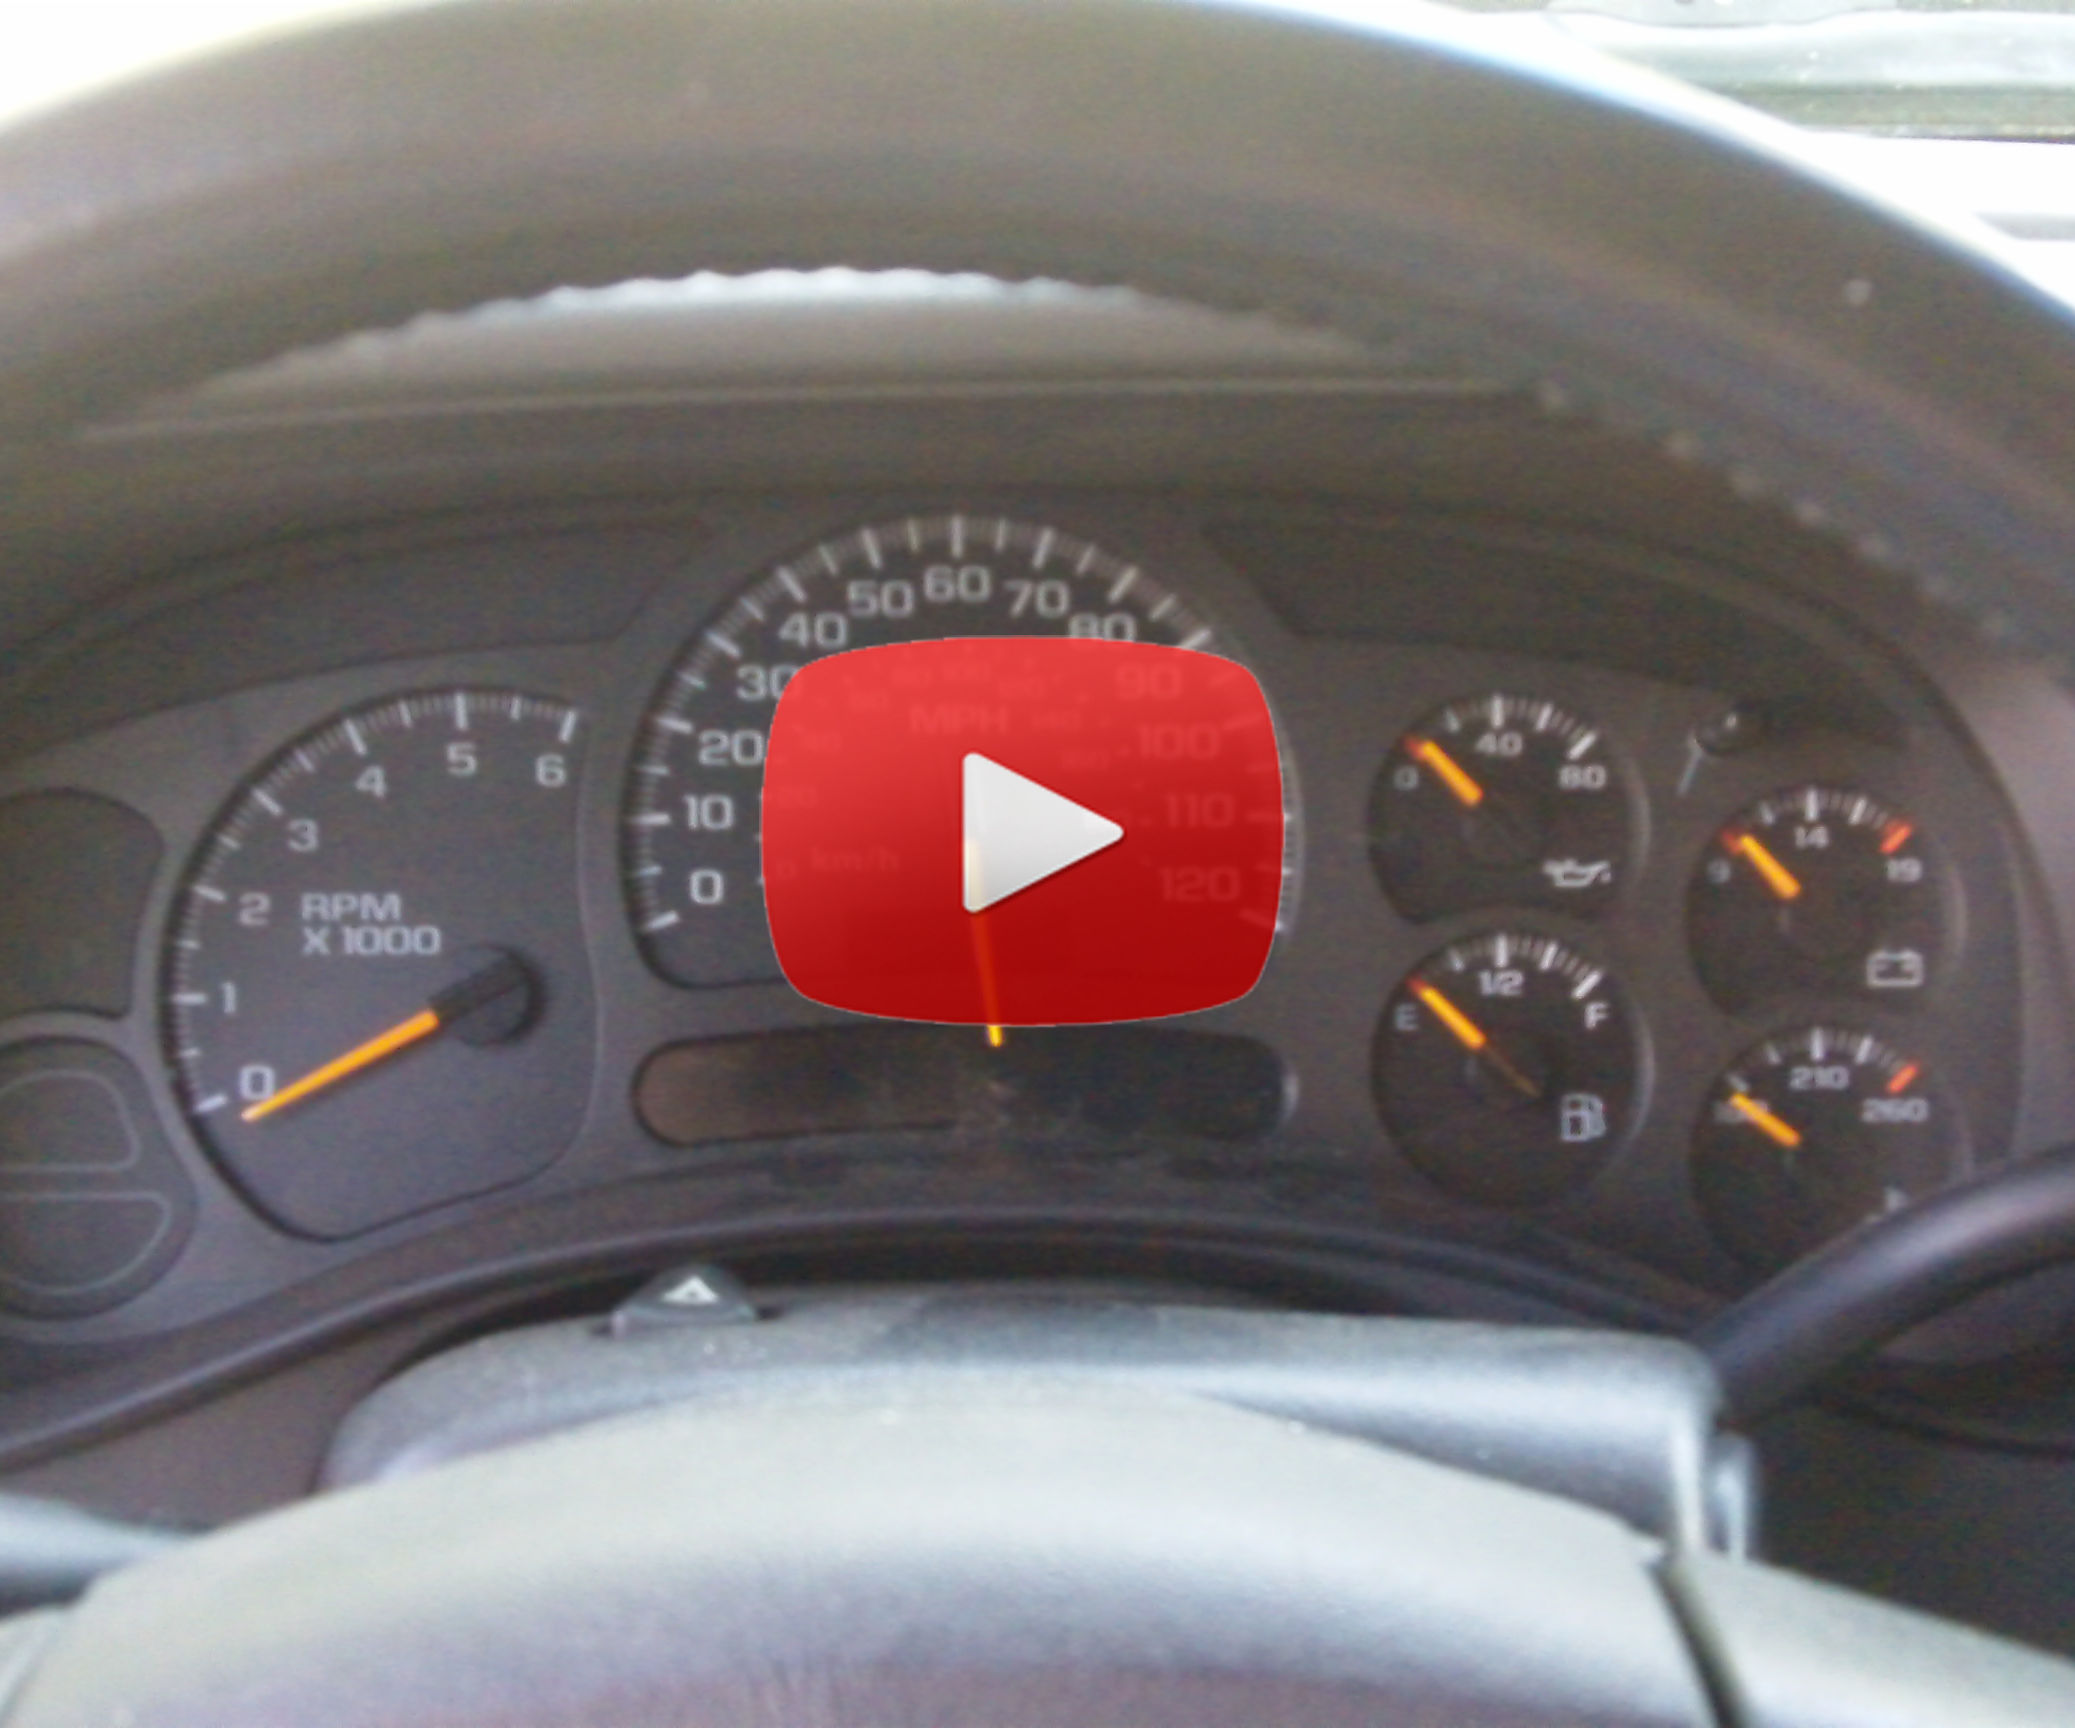 Diy Finally How To Repair A Gm Instrument Cluster At Home Speedometer And All Gauges For Silverado Tahoe Yukon Suburban Sierra H2 Avalanche And Other 2003 2004 2005 And 2006 Chevrolet Gm Vehicles 9 Steps Instructables